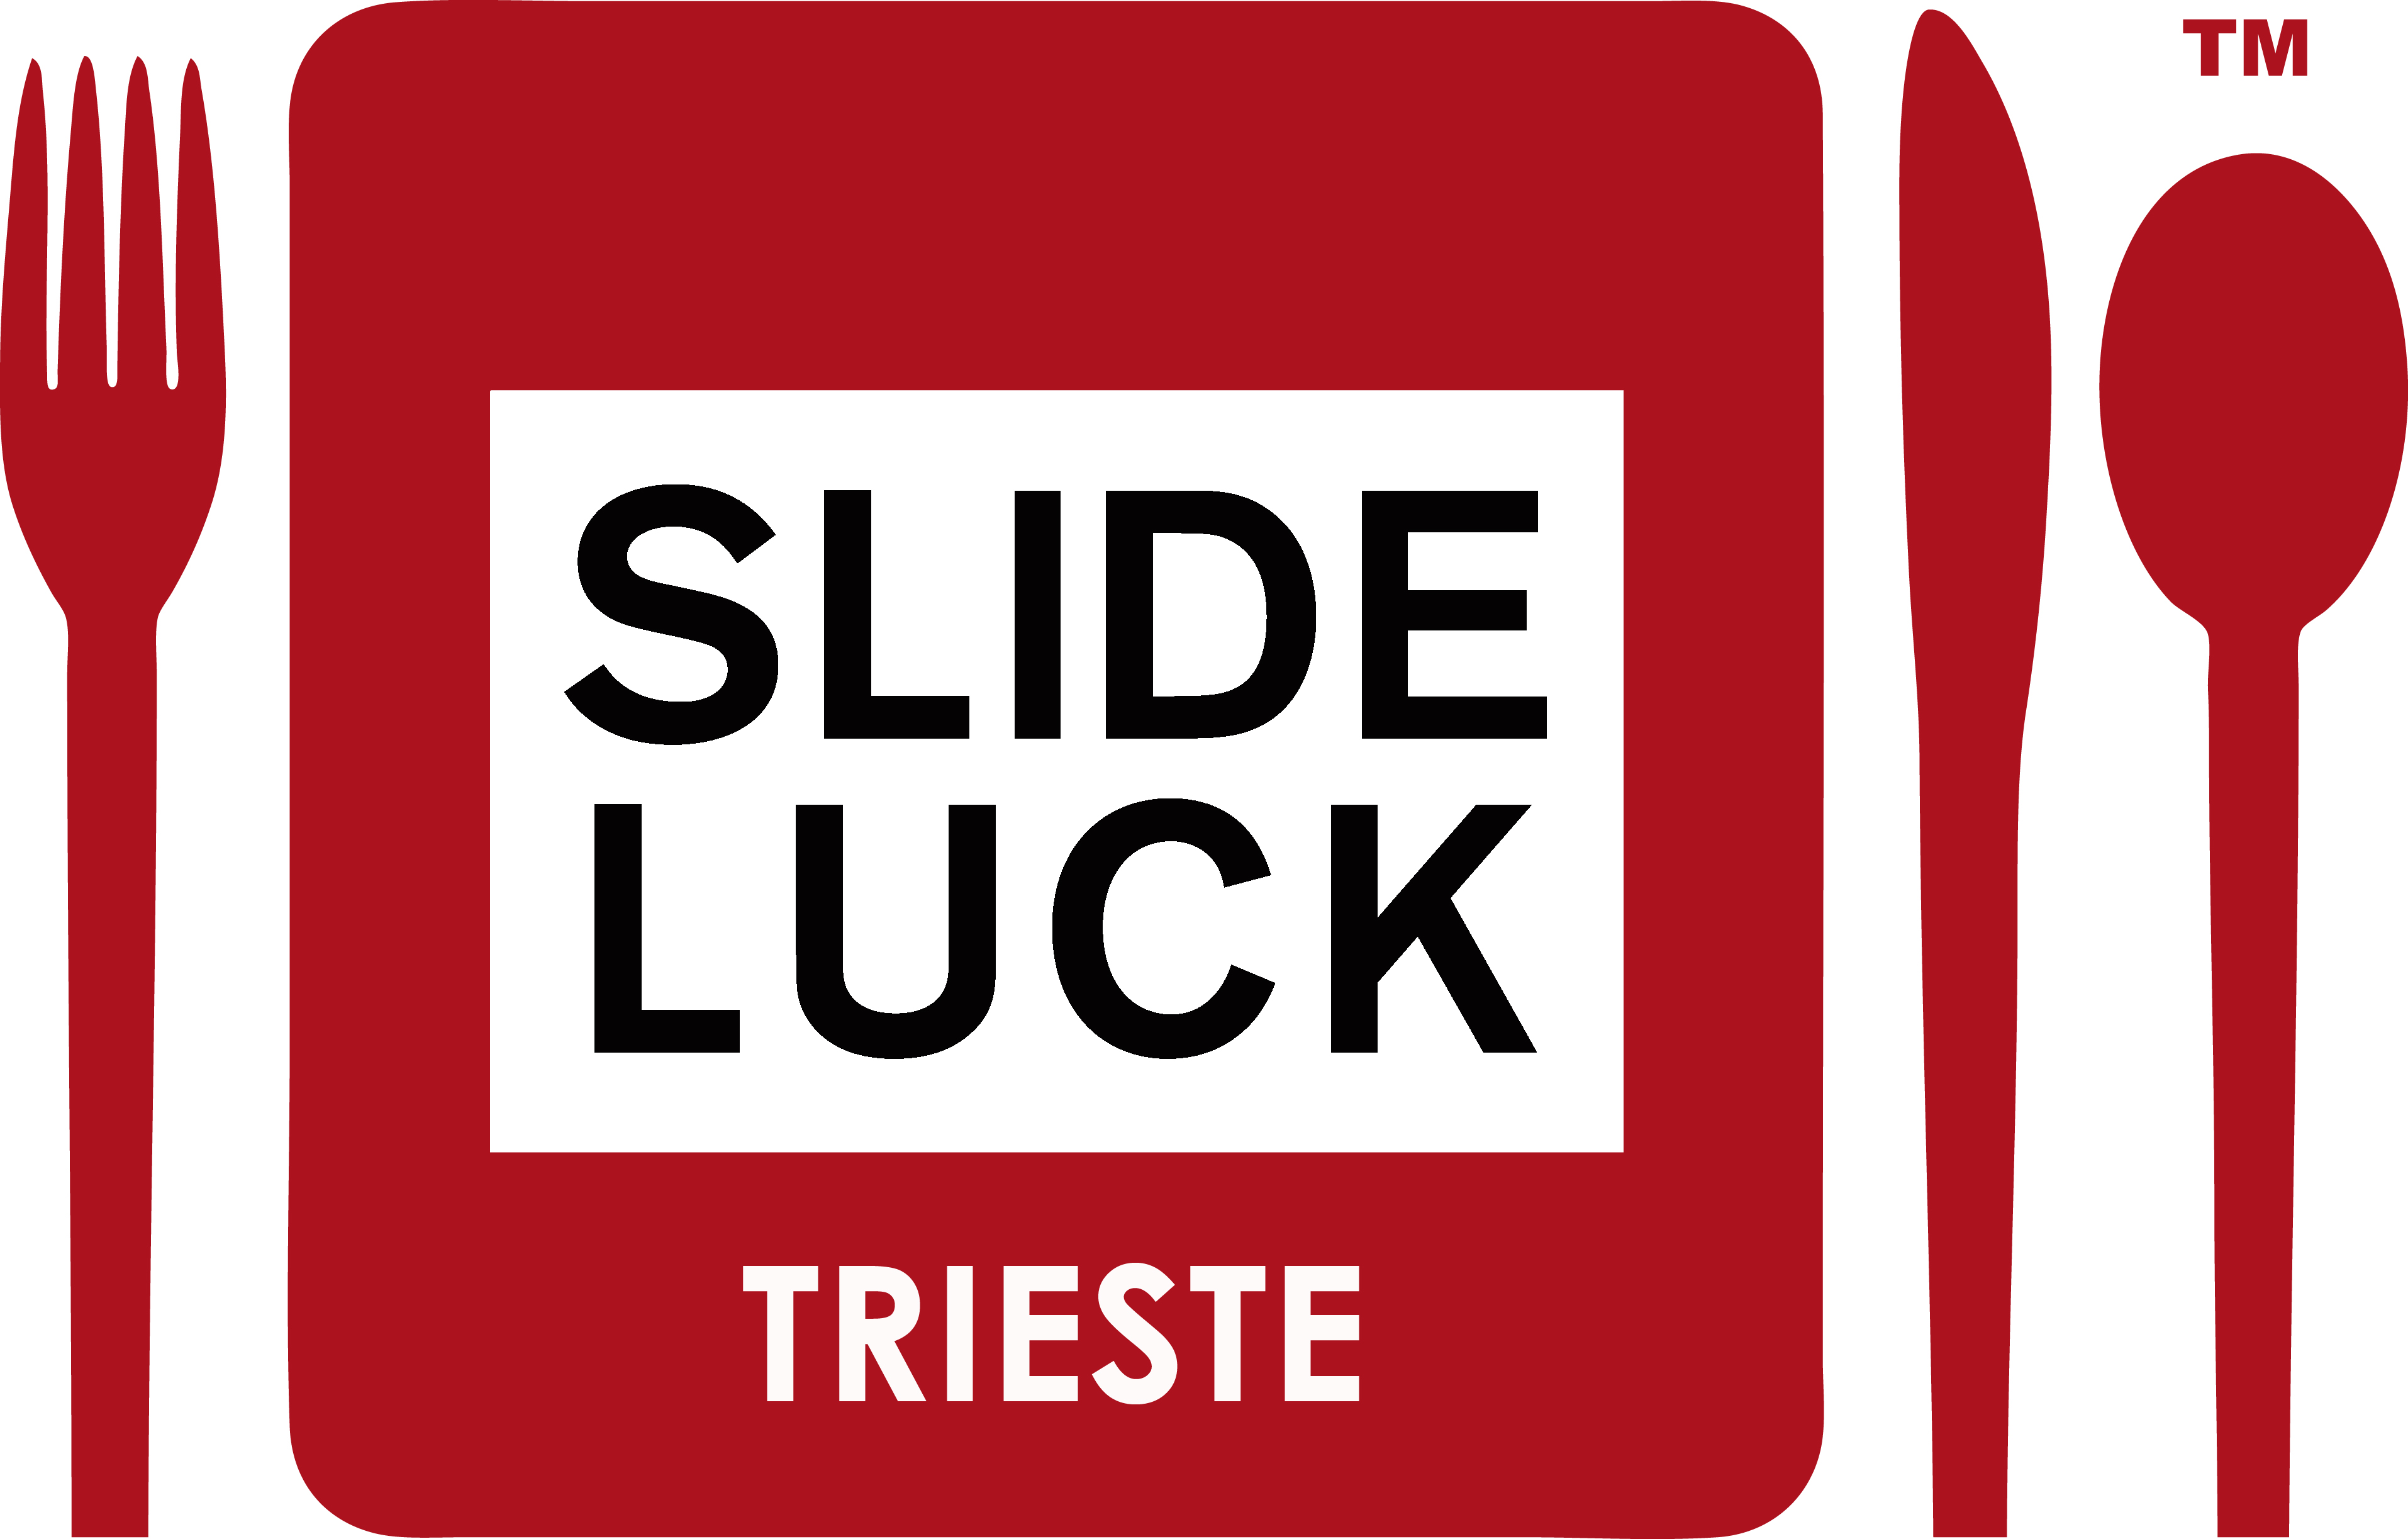 Slideluck Trieste – Out of sight